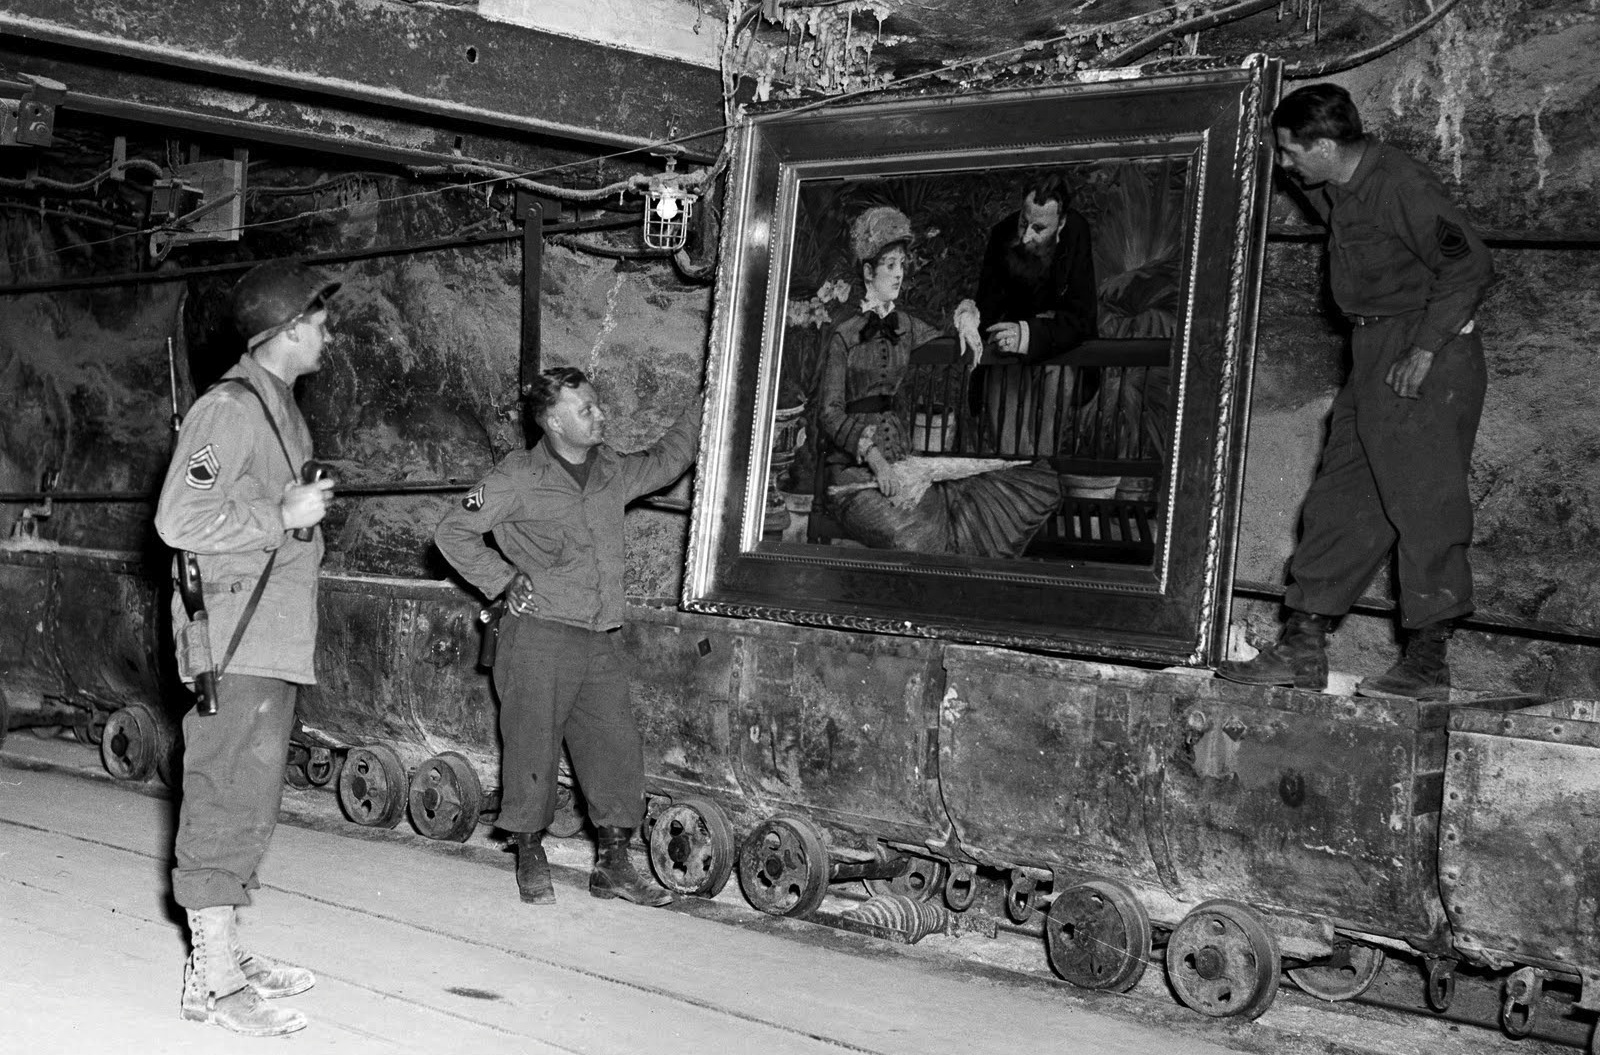 """Merkers, Germany U.S. Soldiers examine a famous painting, """"Wintergarden,"""" by the French Impressionist Edouard Manet, in the collection of Reichbank wealth, SS loot, and paintings removed by the Nazis from Berlin to a salt mine vault. The 90th Div, U.S. Third Army, discovered the gold and other treasure. 04/15/45 Photographer: Cpl. Ornitz RG-111-SC-203453-5.tif"""